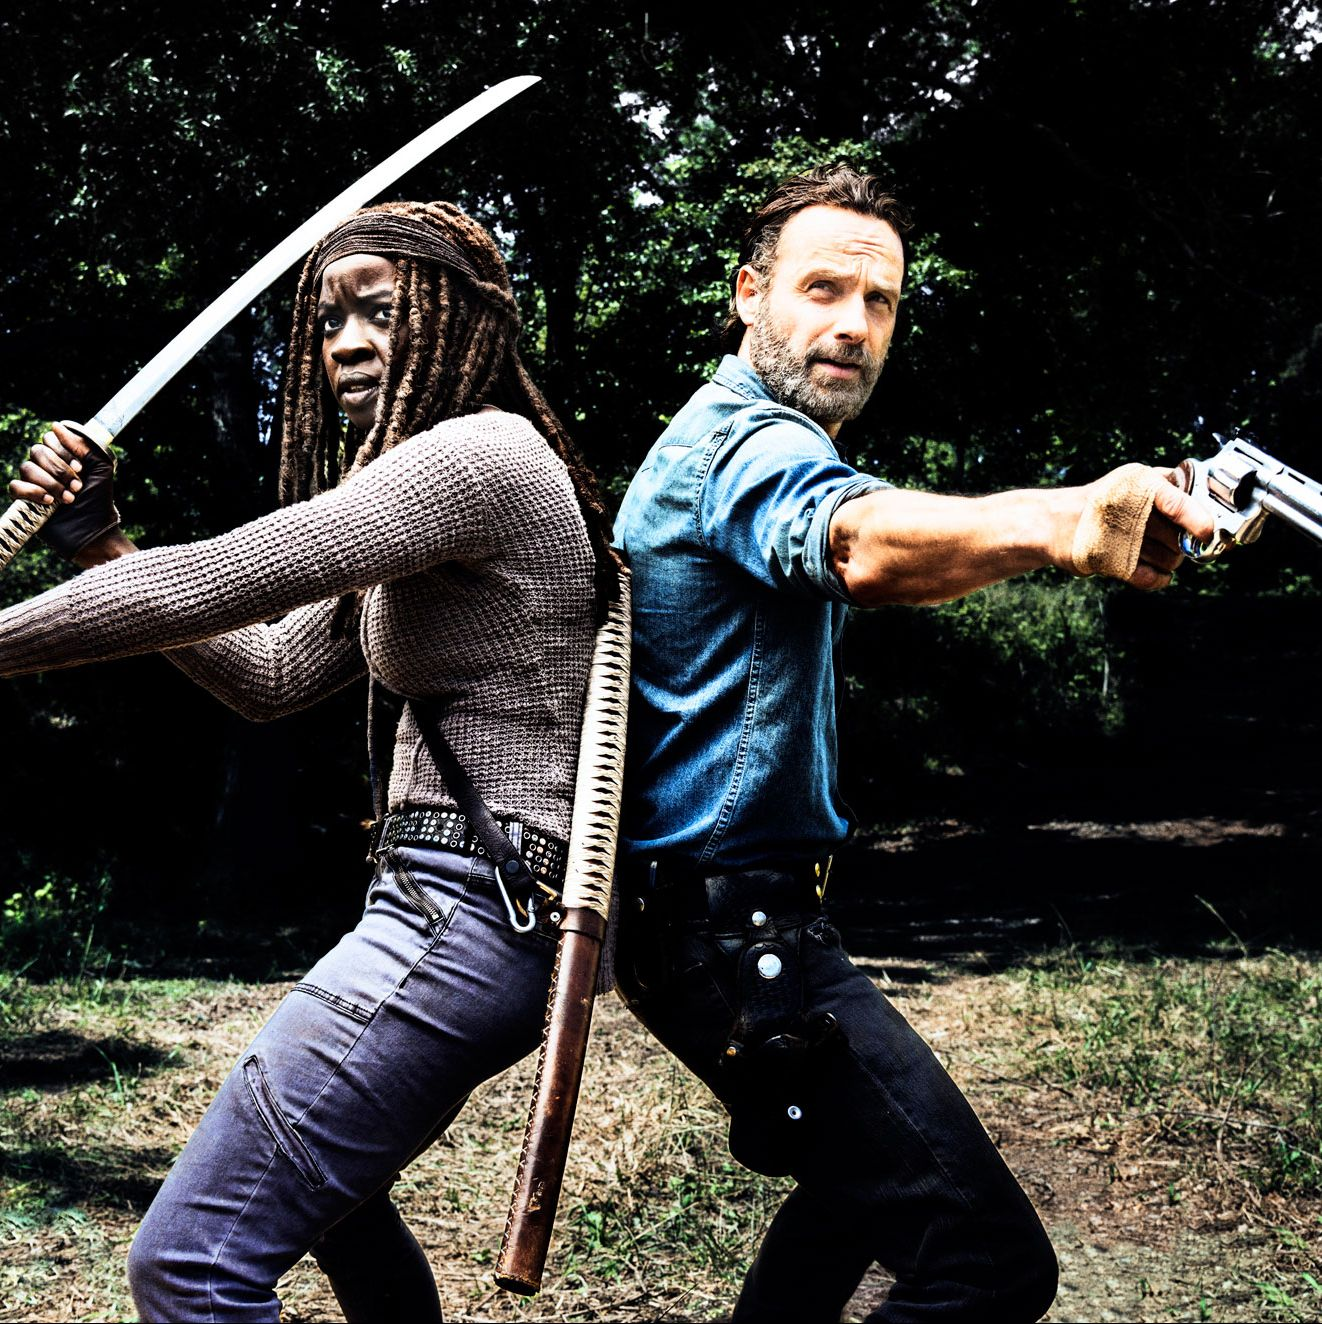 New Walking Dead game announced starring Rick Grimes and Michonne